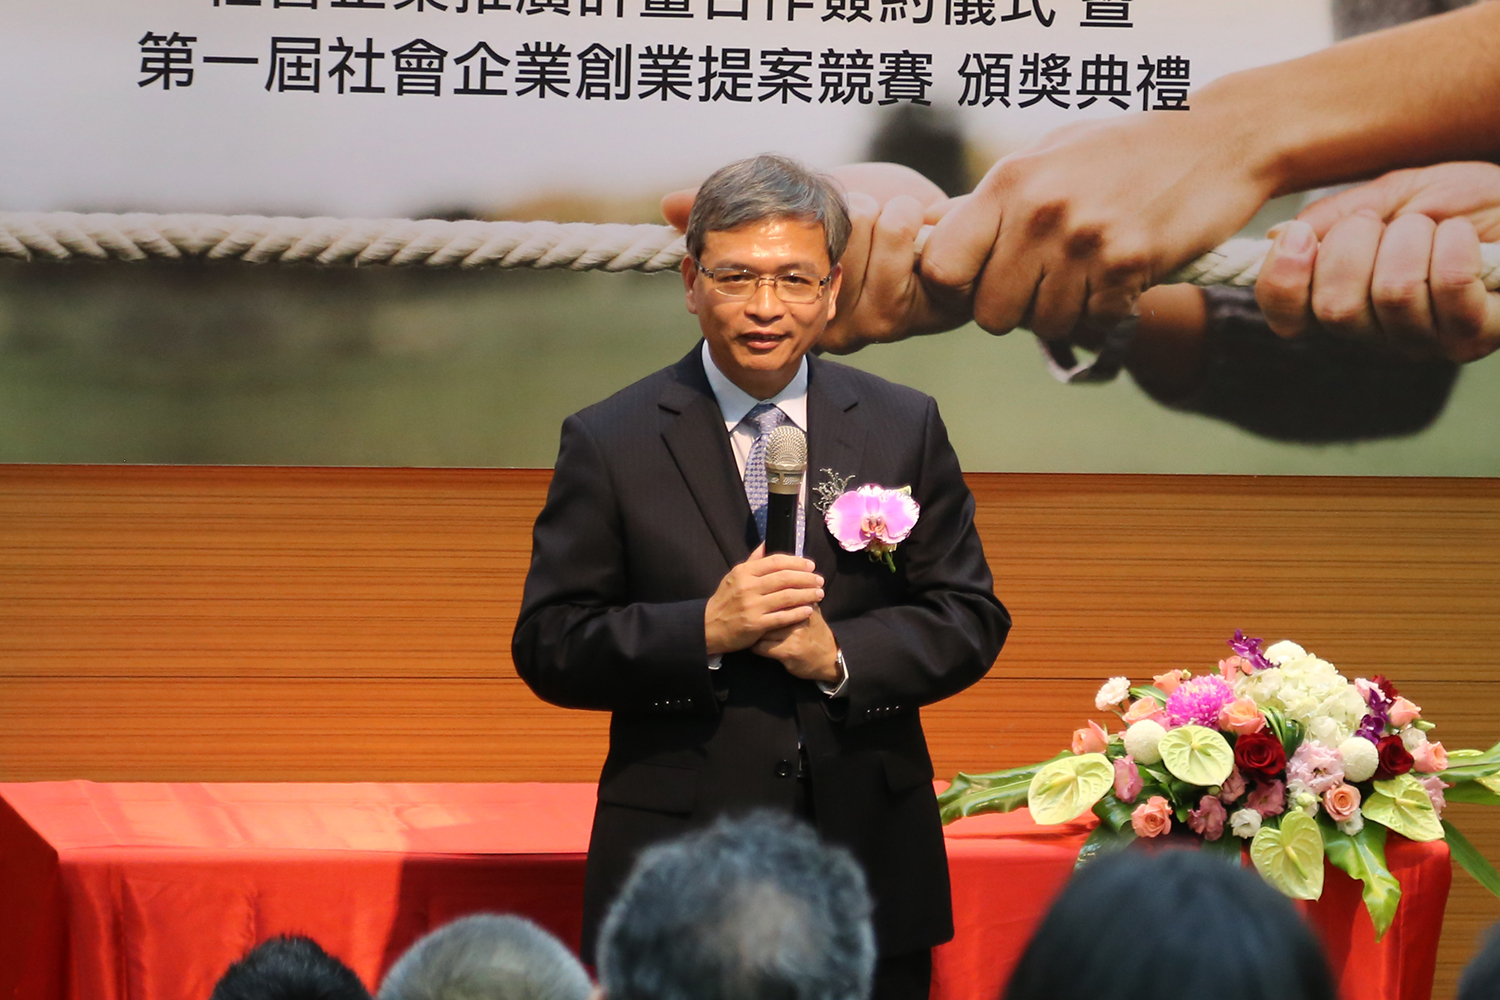 Chairmen En-Te Hsu of the Taiwan Social Enterprise Sustainability and Development Association